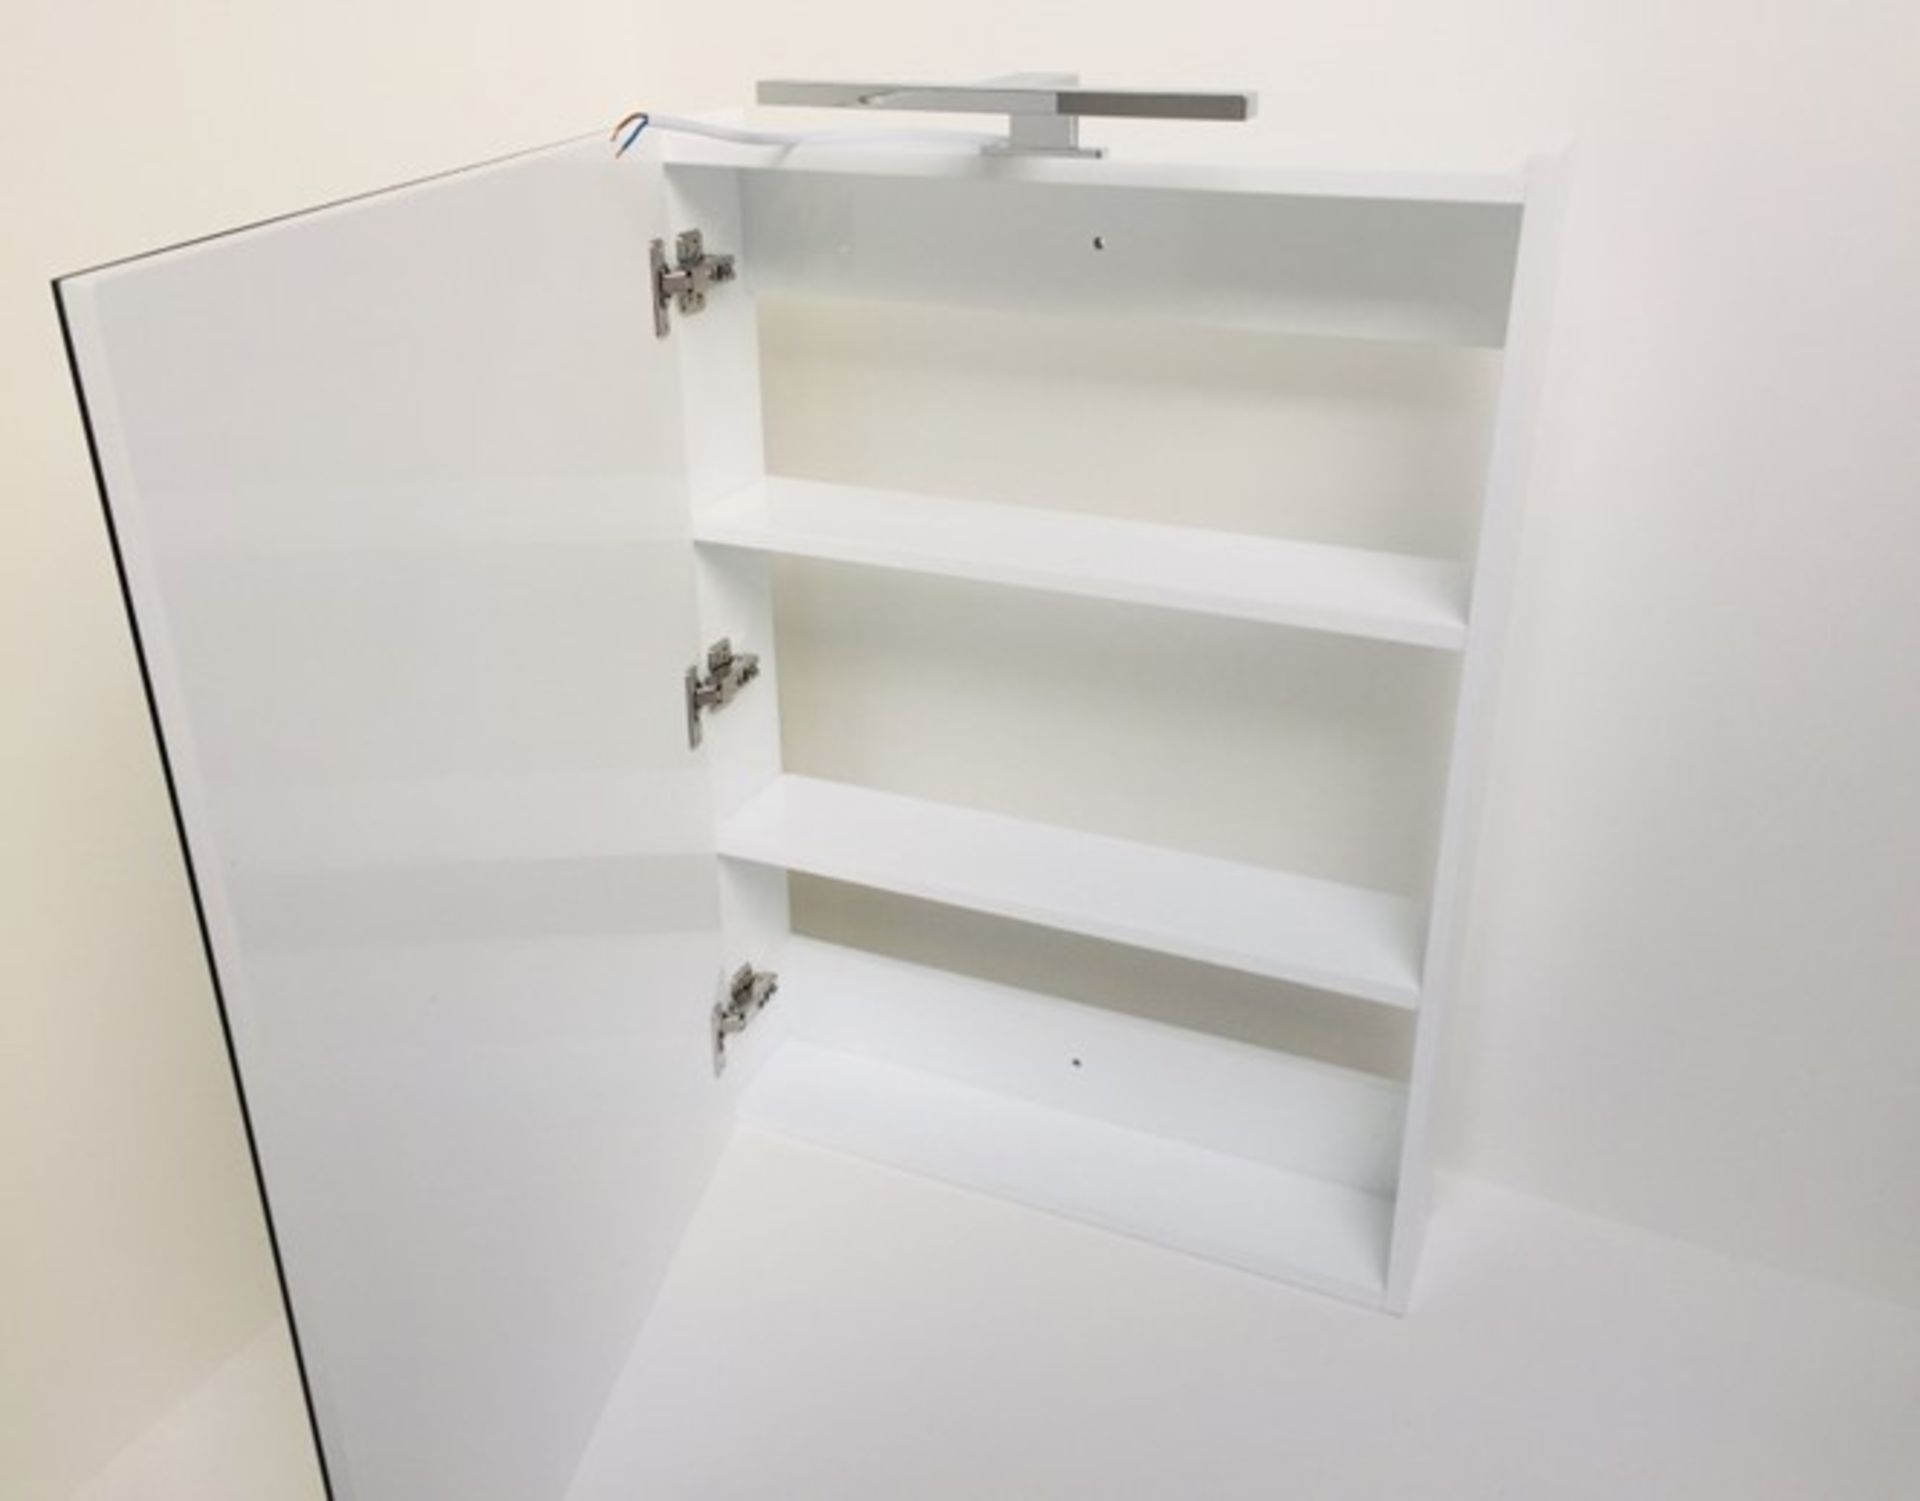 Lot 24 - Mirrored Cabinet In White With LED Light